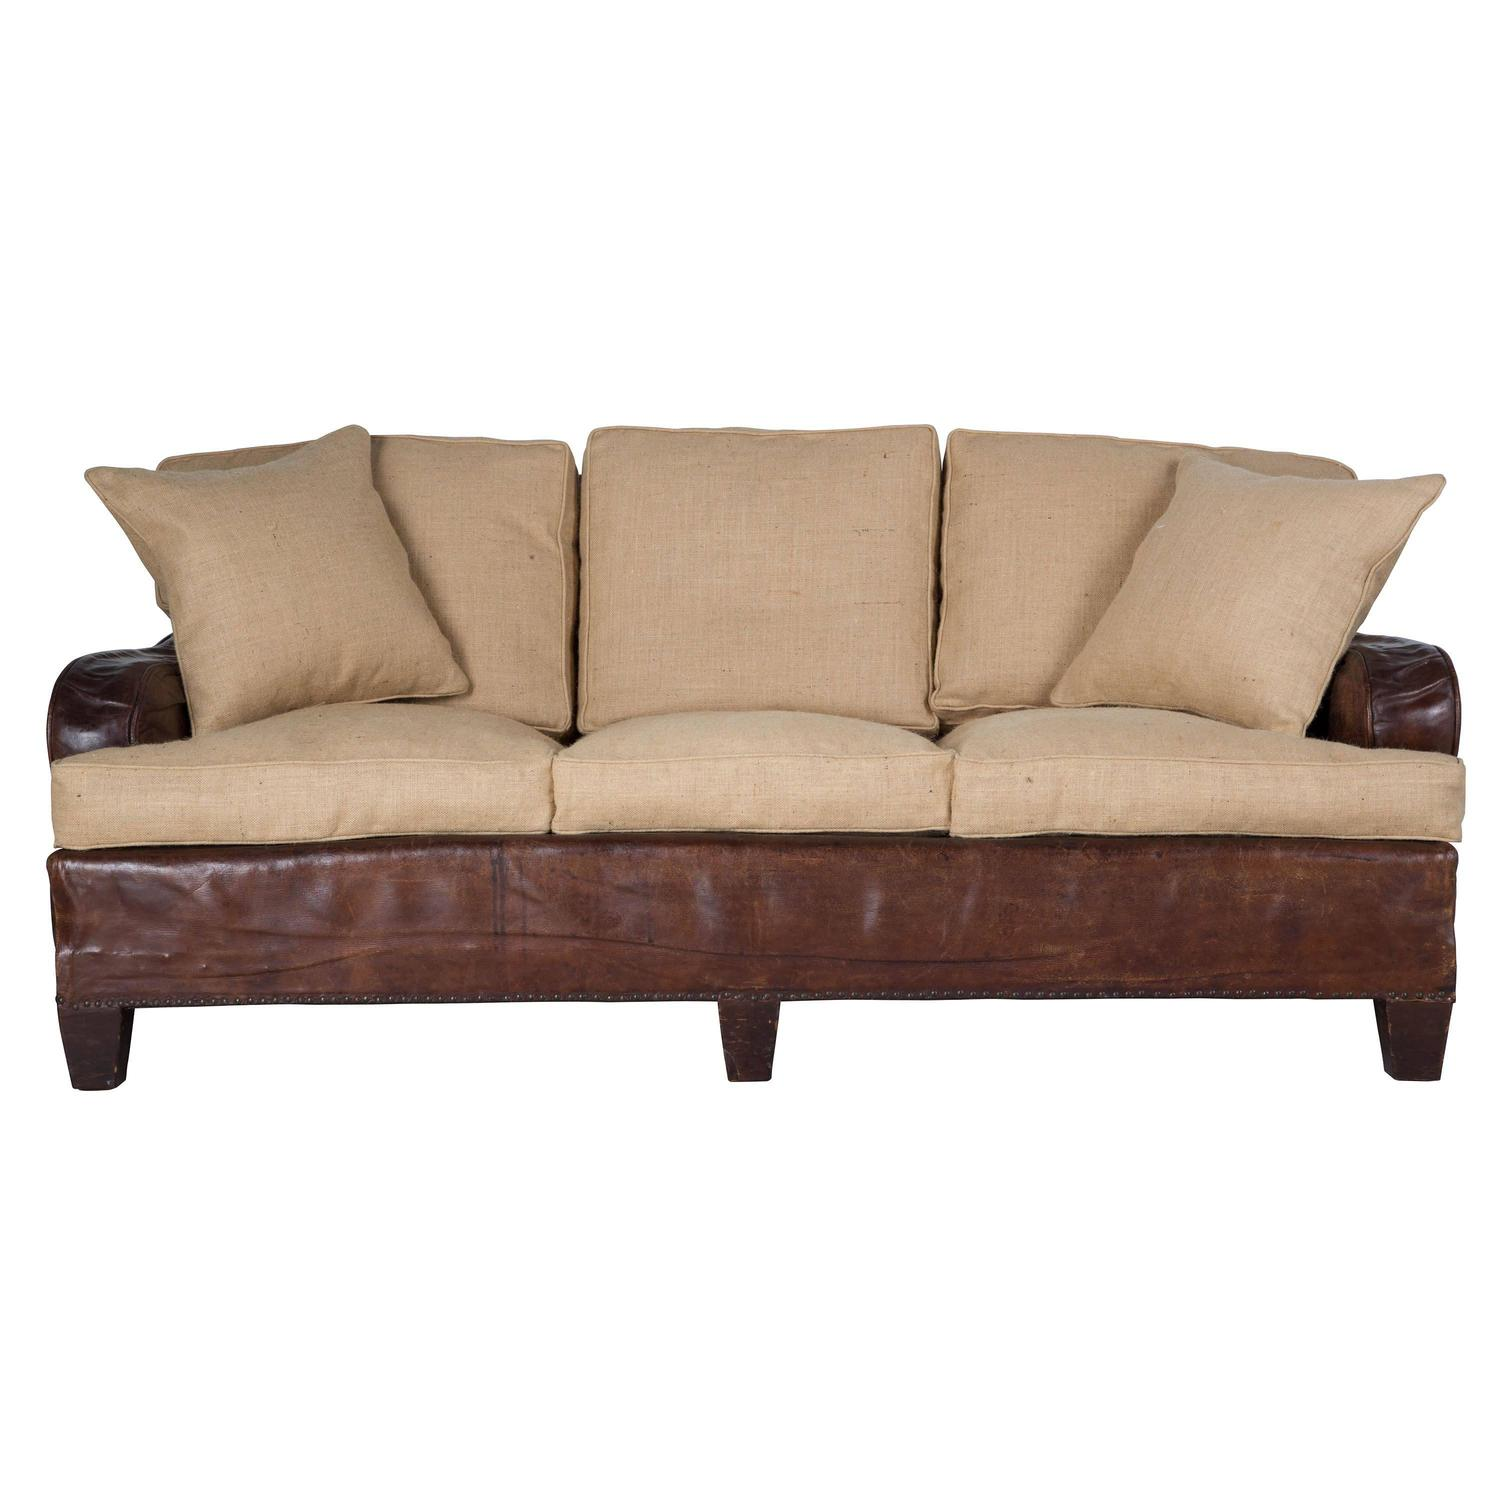 Reupholstered three seat leather sofa at 1stdibs Reupholster loveseat